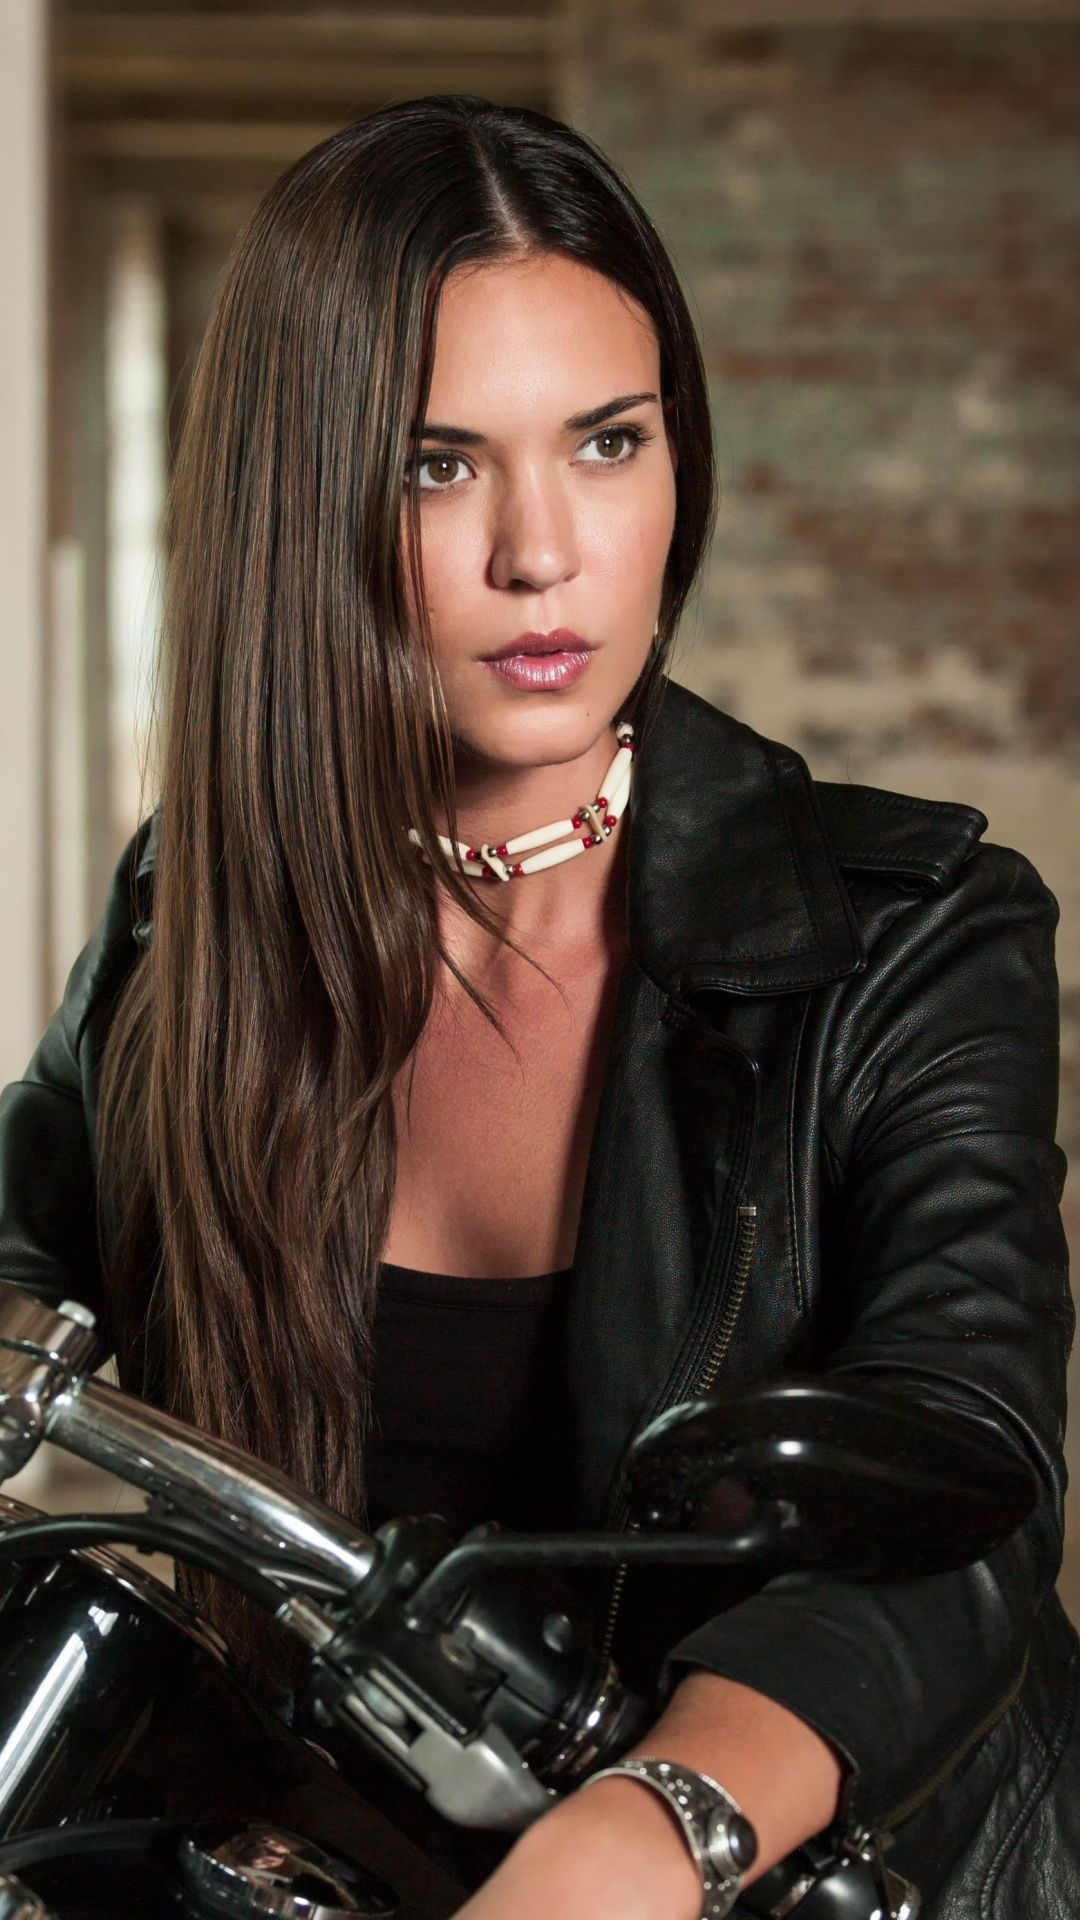 Odette Annable American Actress Leather Jacket 1080x1920 Wallpaper Beautiful Girl Face Leather Jacket Girl Beauty Women